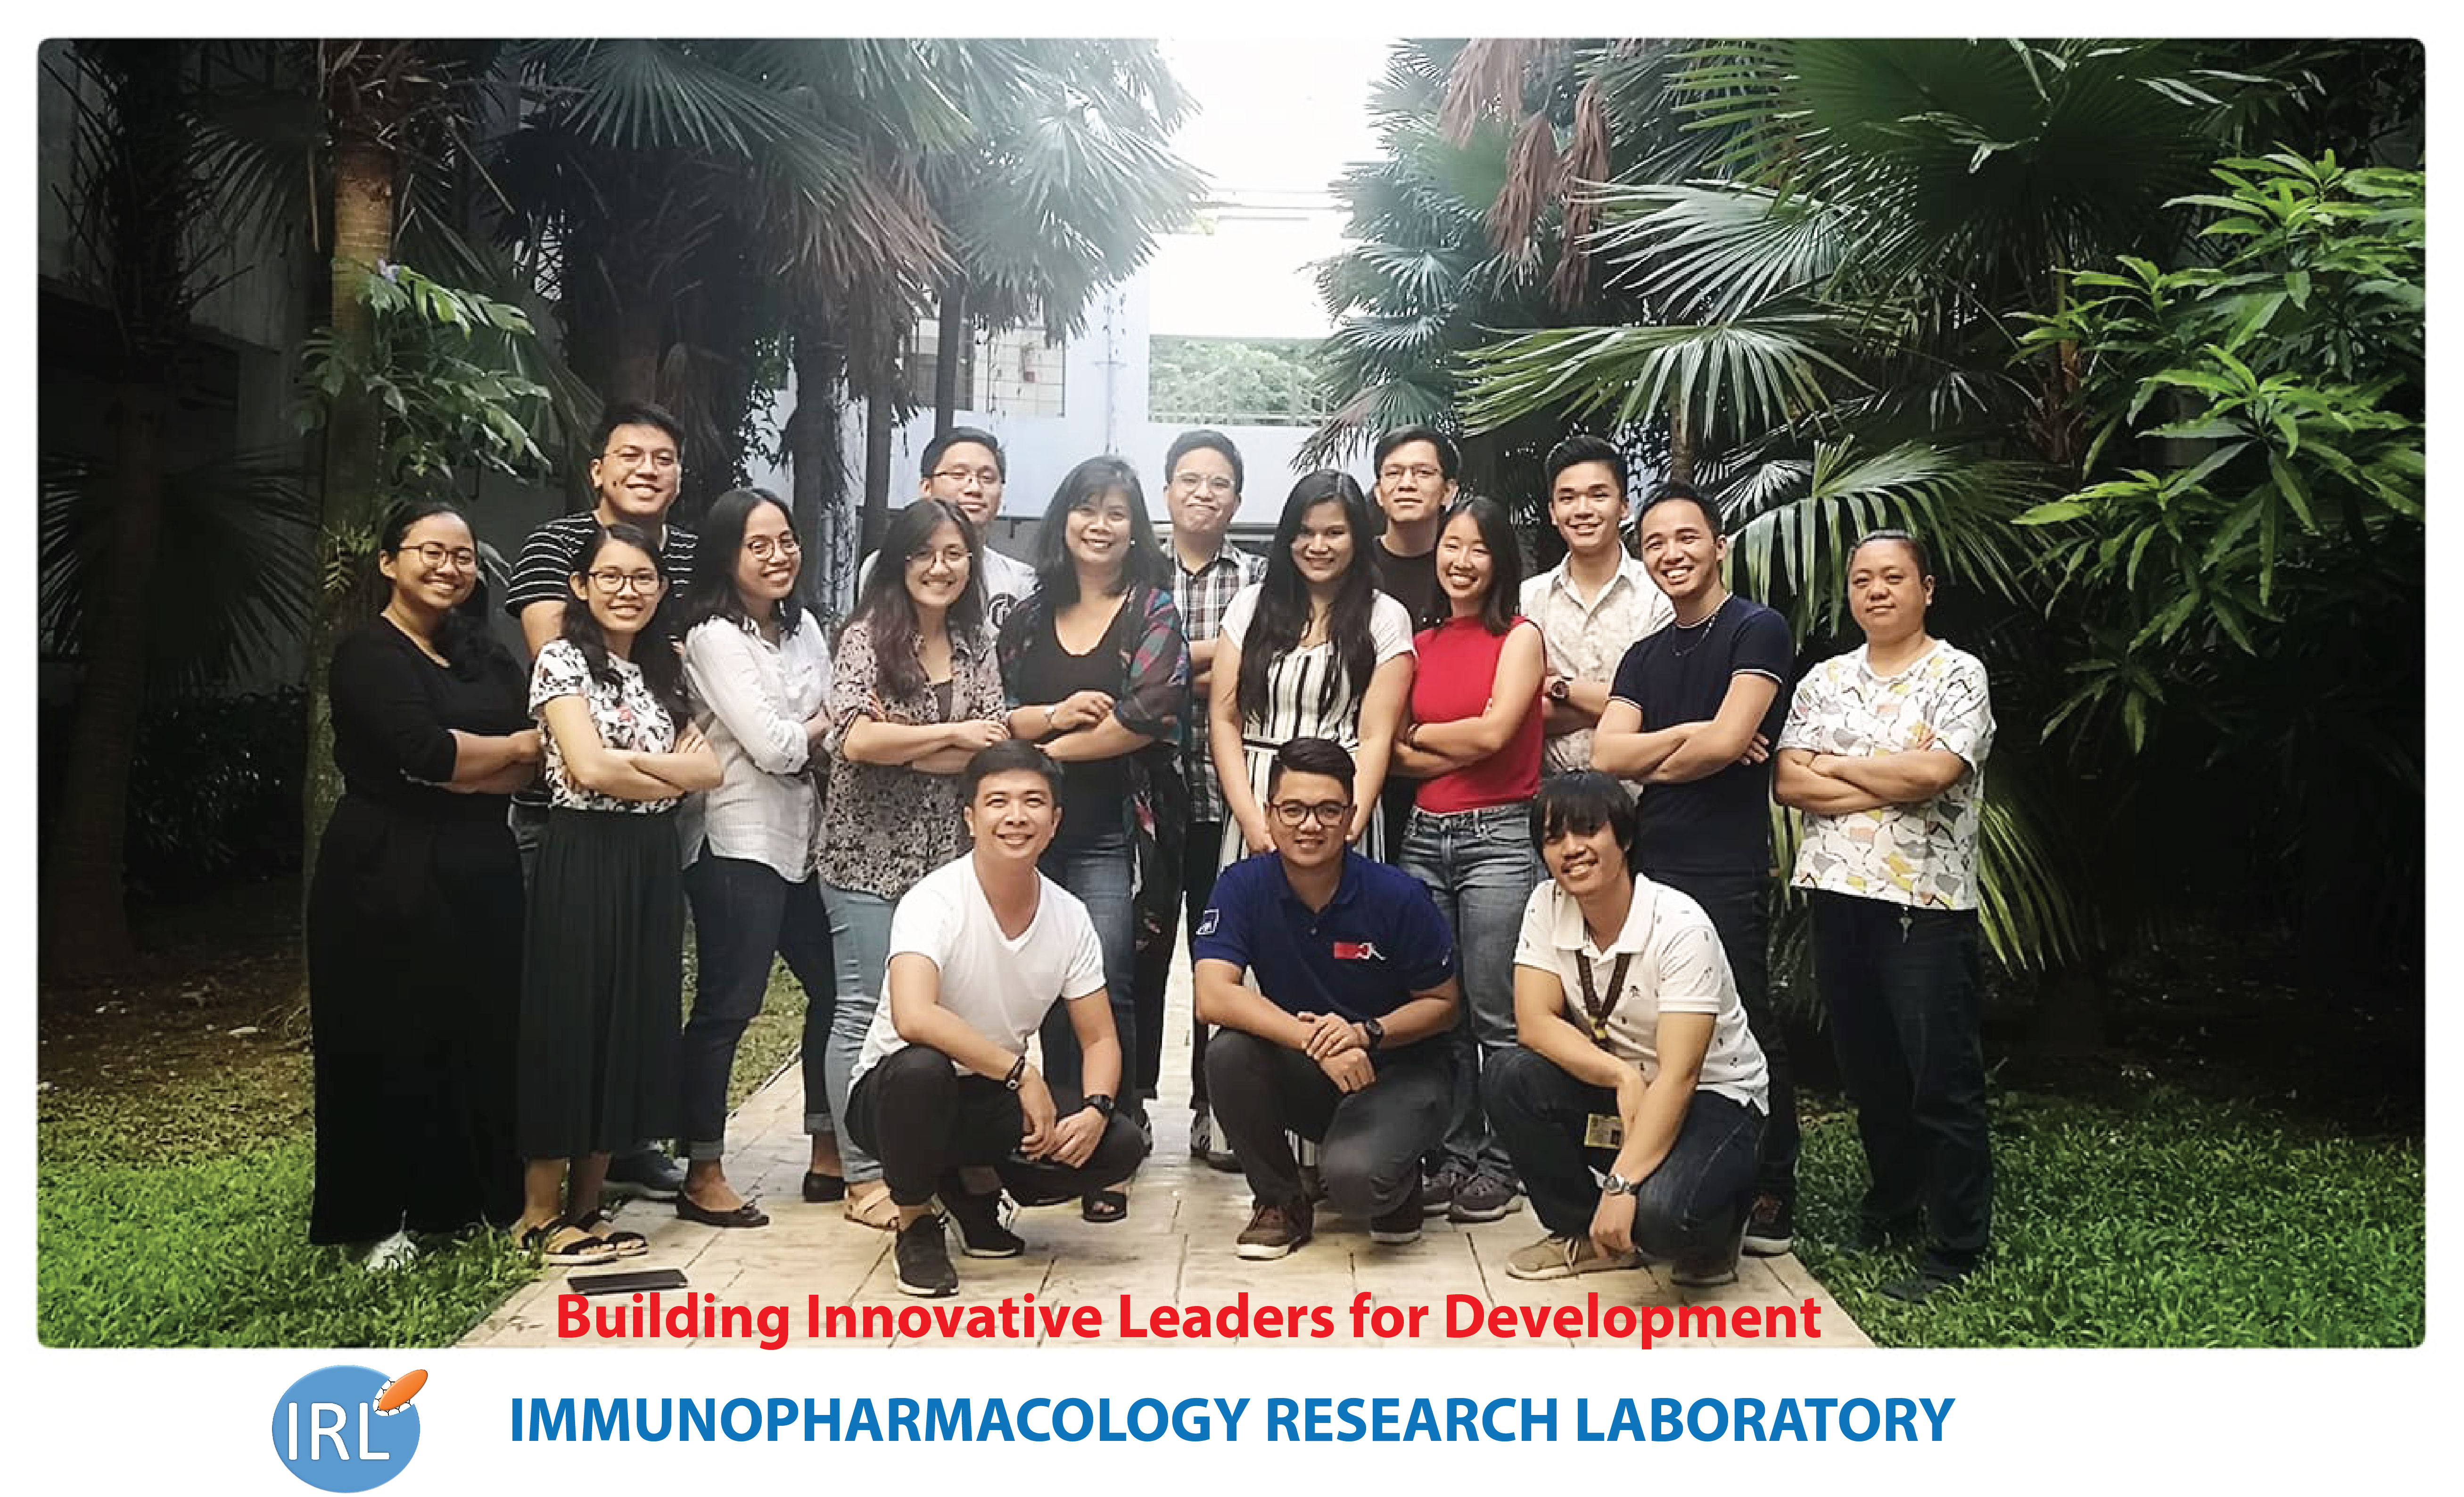 Immunopharmacology Research Laboratory 2019